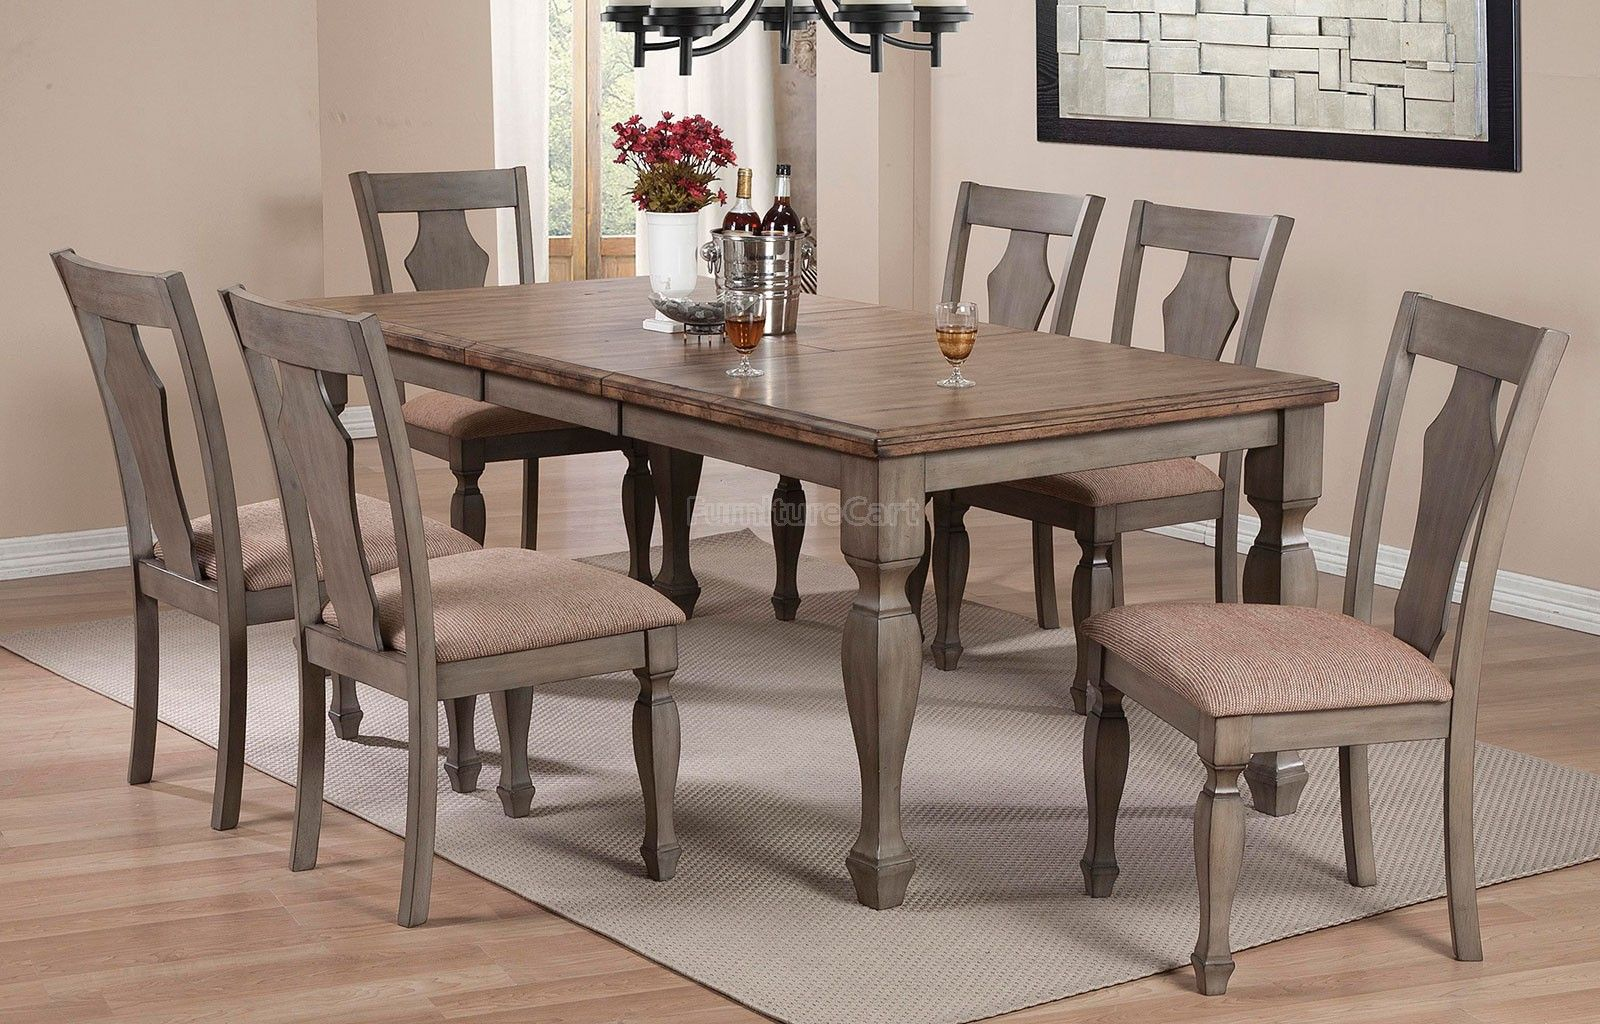 Riverbend Dining Room Set Grey Dining Tables Furniture Dining